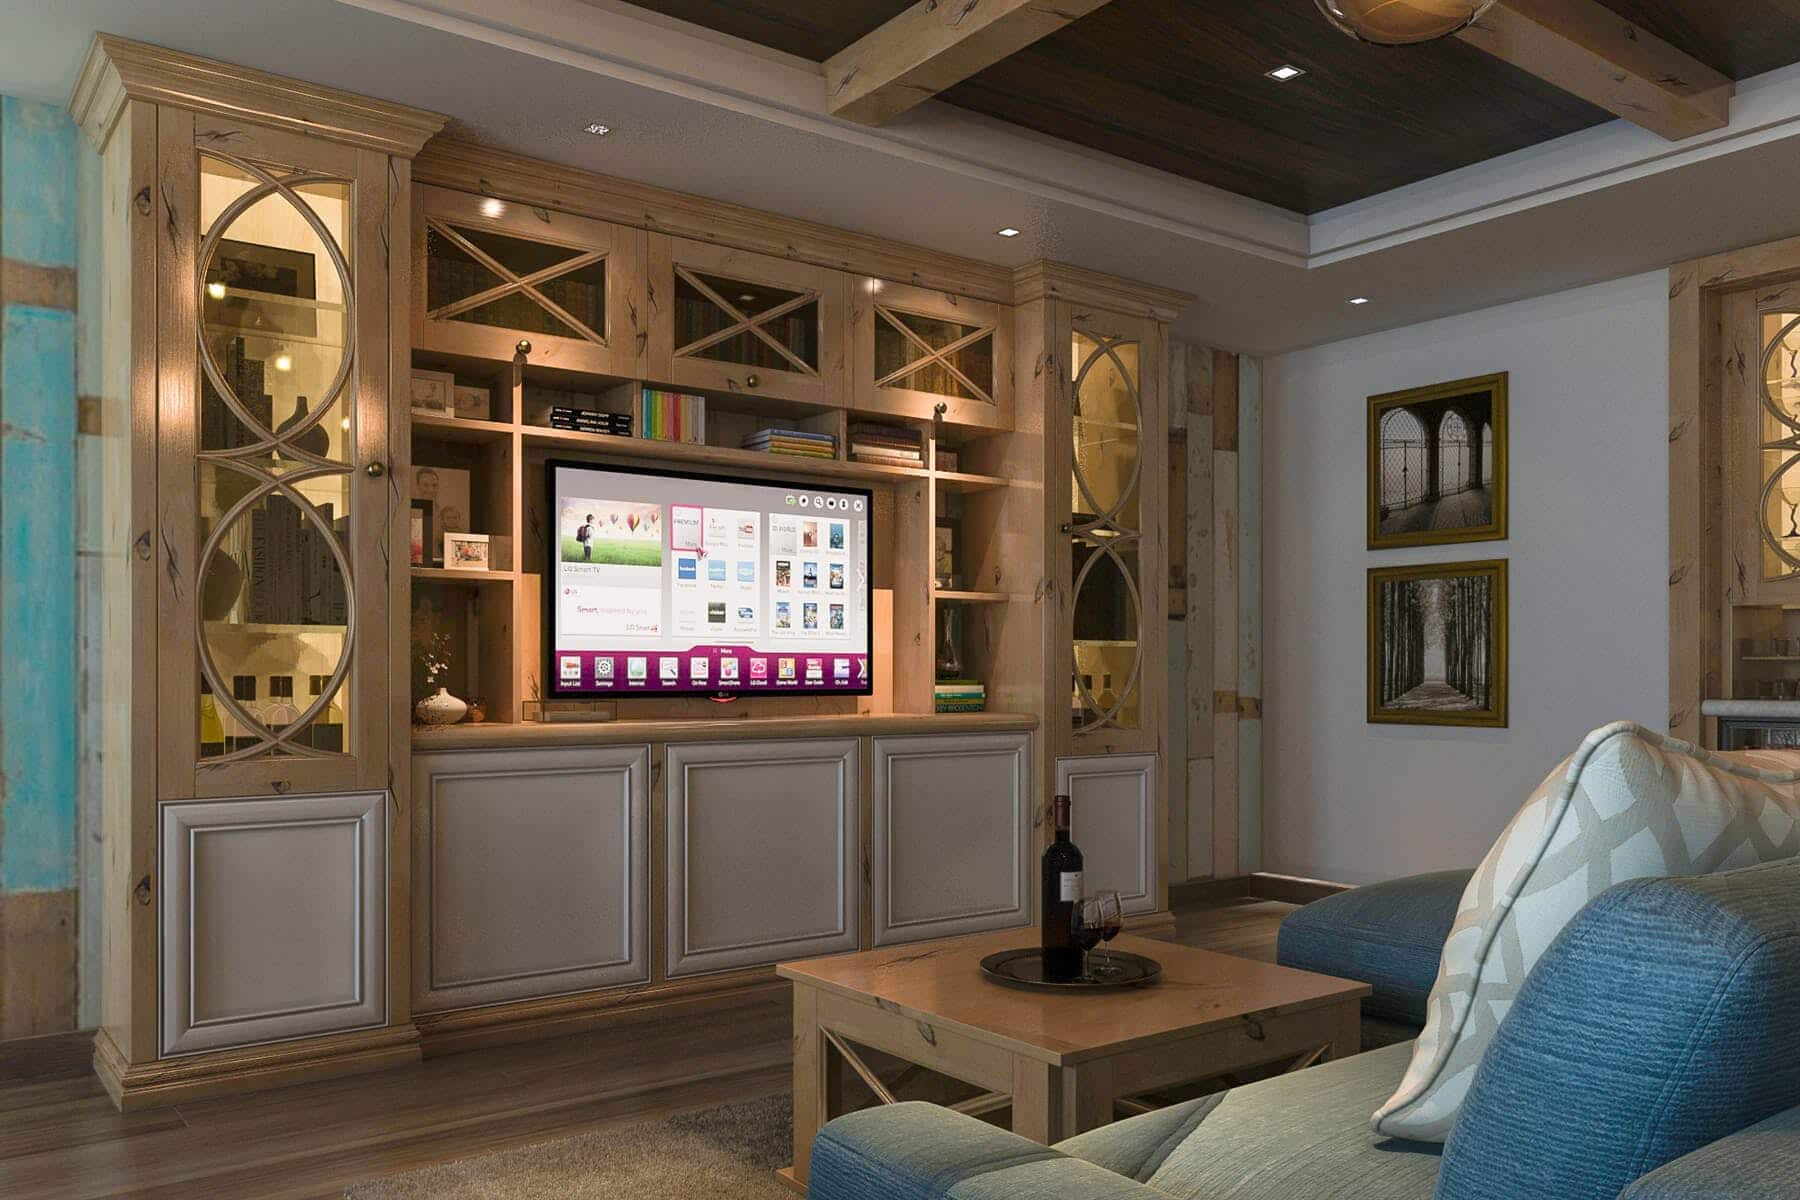 The Room Features A Rustic Style Wall Unit Design